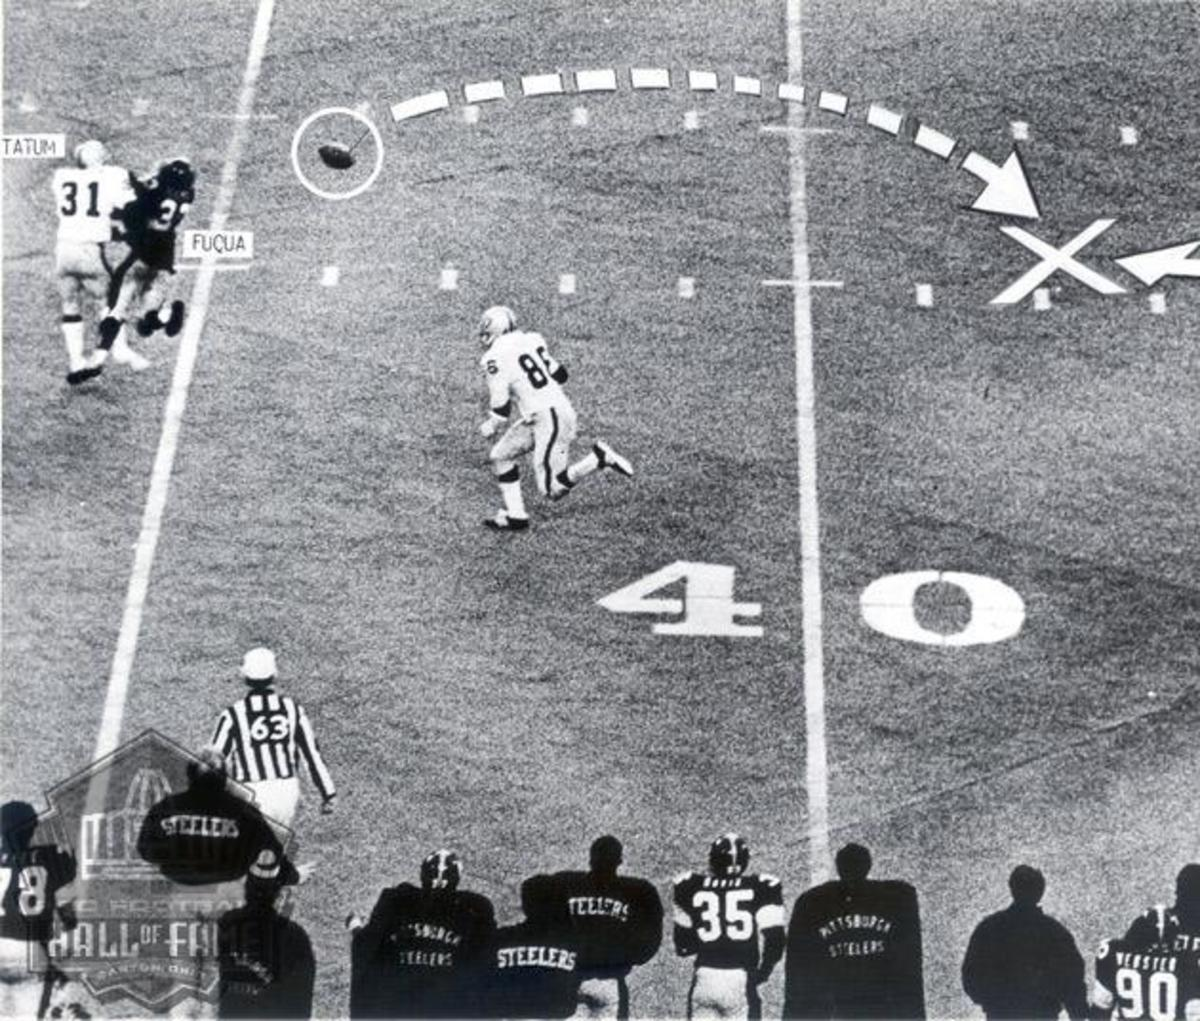 Pittsburgh quarterback Terry Bradshaw dropped back to pass, but the Raiders flushed him out of the pocket to the right. He saw running back John (Frenchy) Fuqua over the middle at the Raiders' 35, and with defenders closing, Bradshaw fired a pass tow